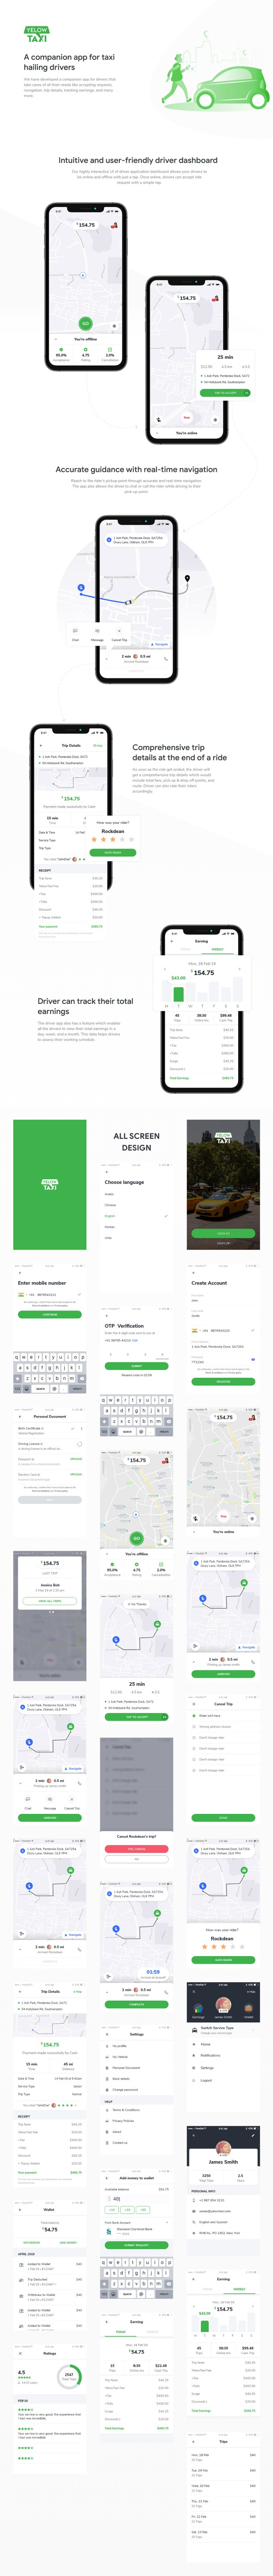 Uber-like Taxi Hailing Driver App UI for Adobe XD